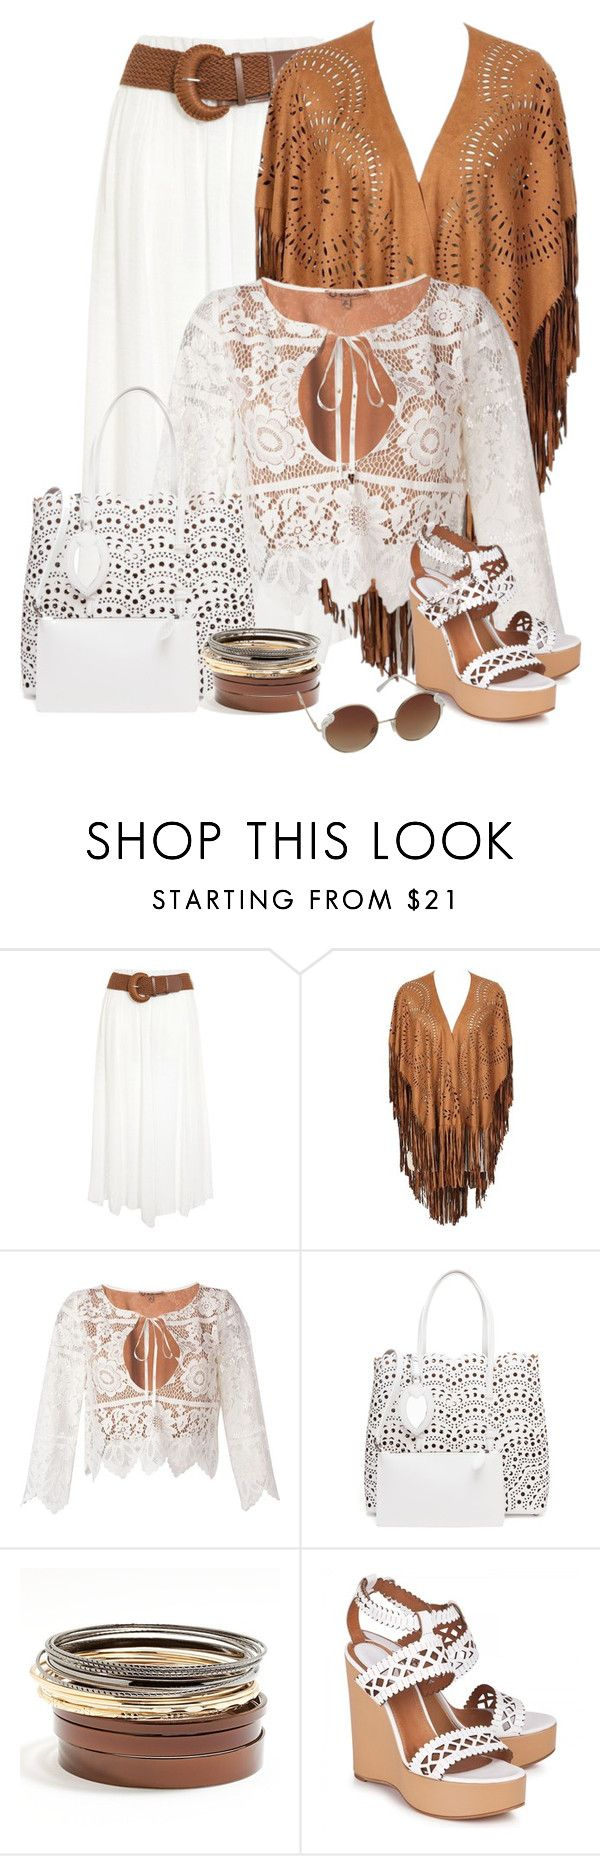 """""""16.08.2016"""" by marie-iiii ❤ liked on Polyvore featuring For Love & Lemons, Alaïa, Daisy Fuentes, Chloé and Dorothy Perkins"""